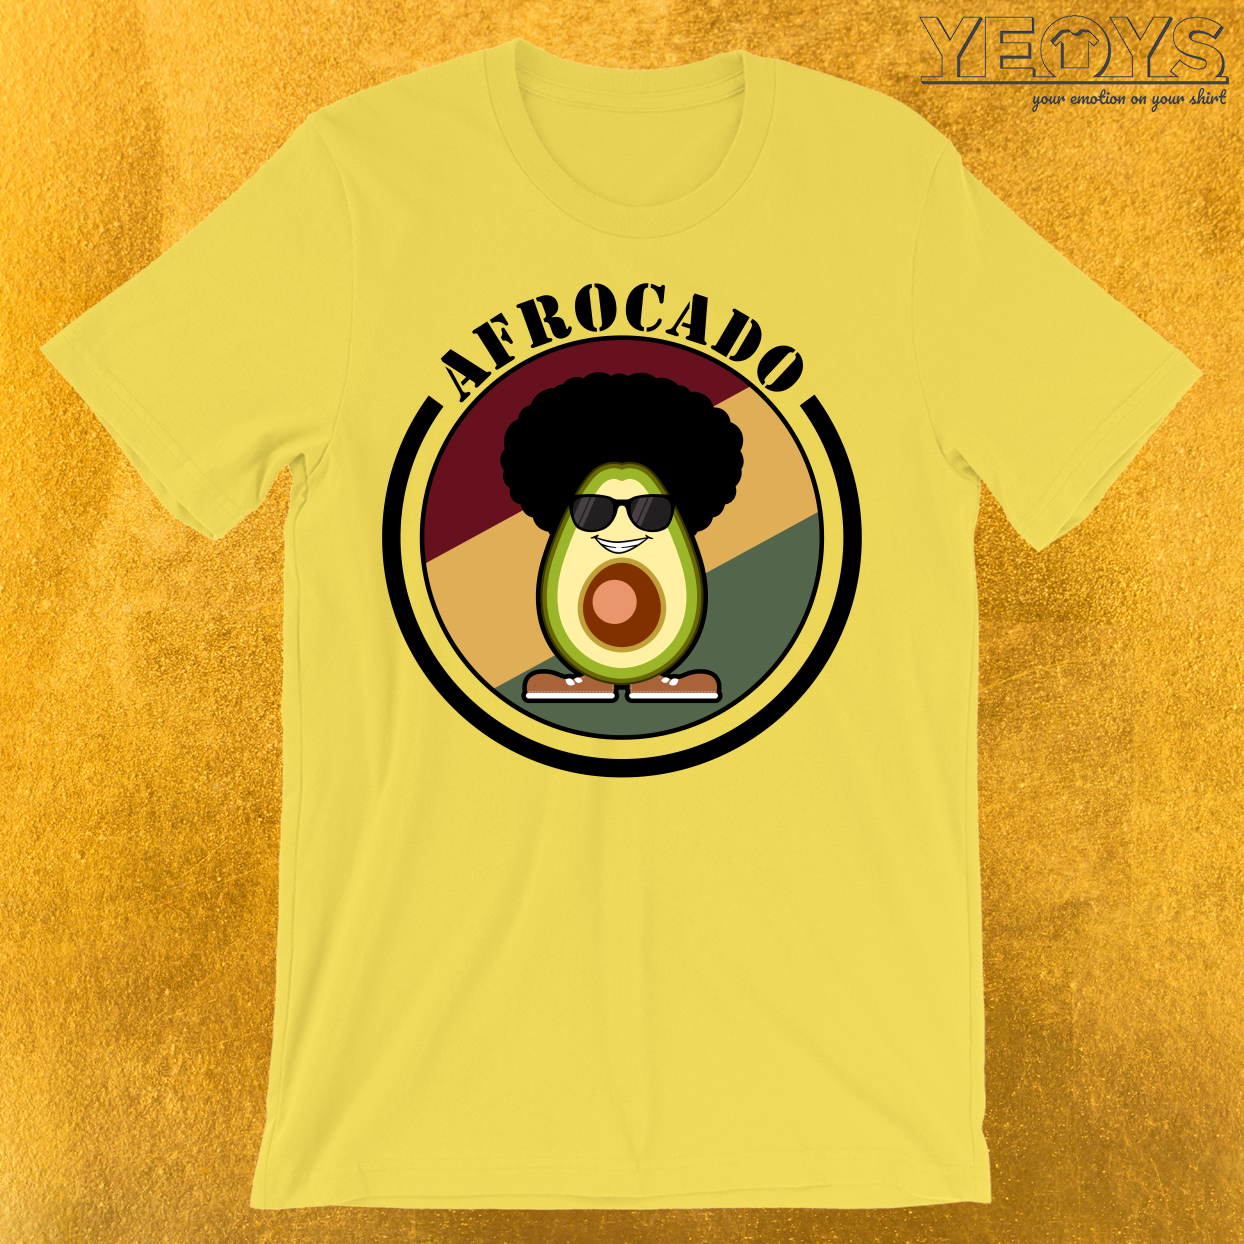 Afrocado Funny Avocado Pun T-Shirt